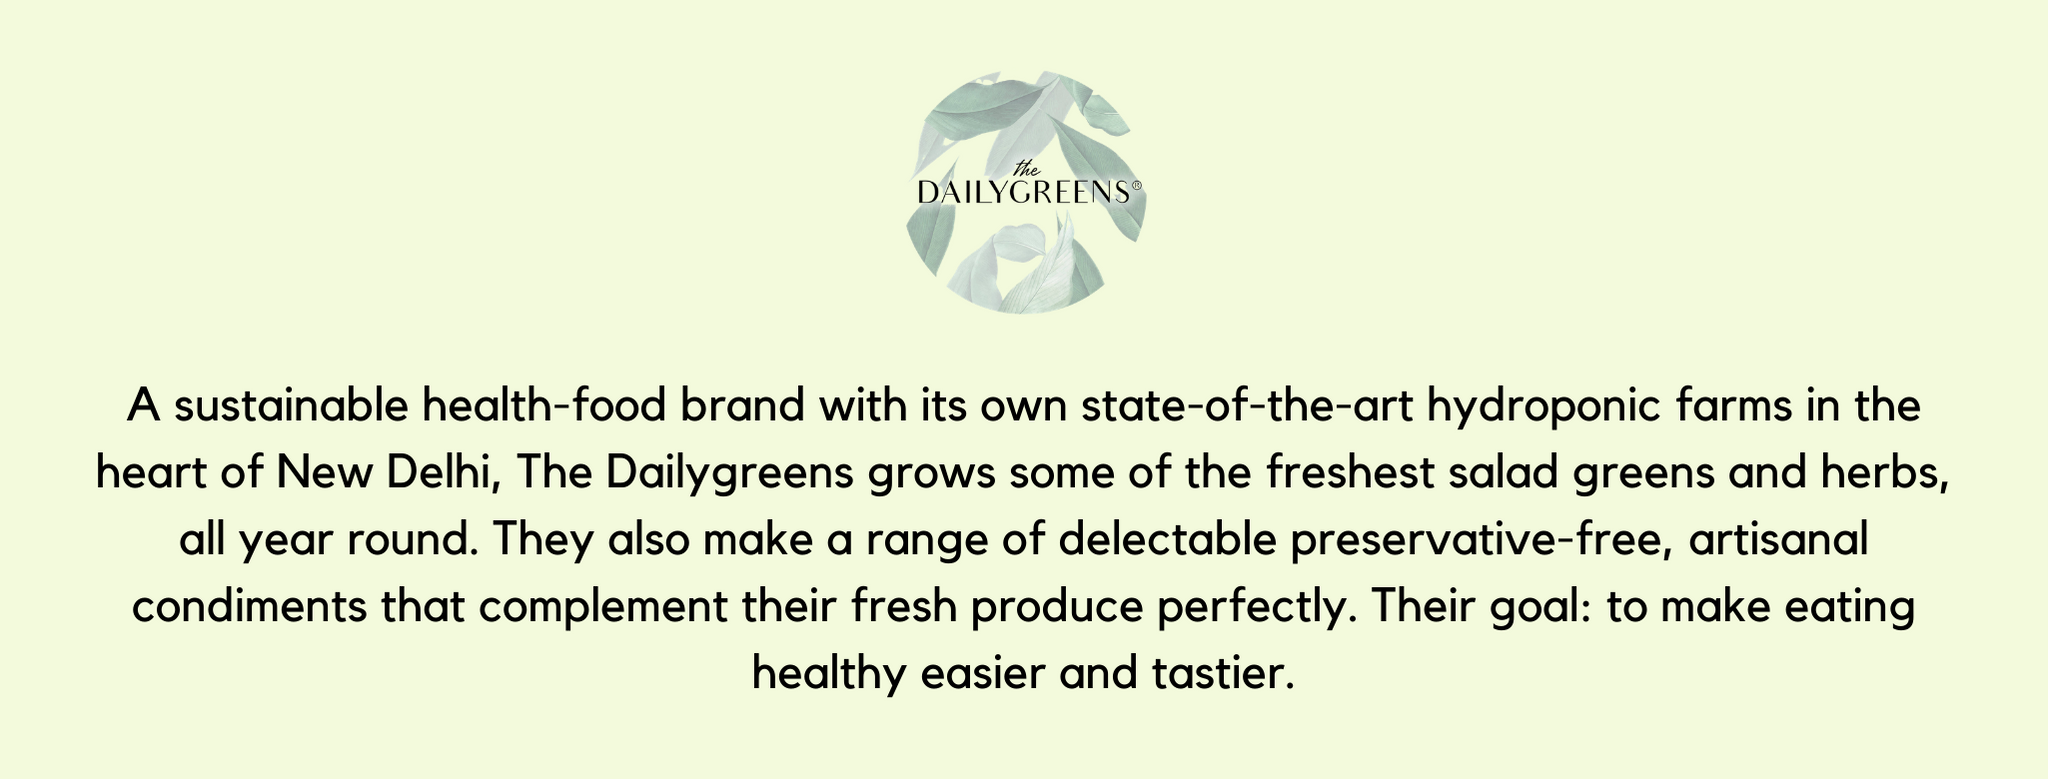 The Dailygreens